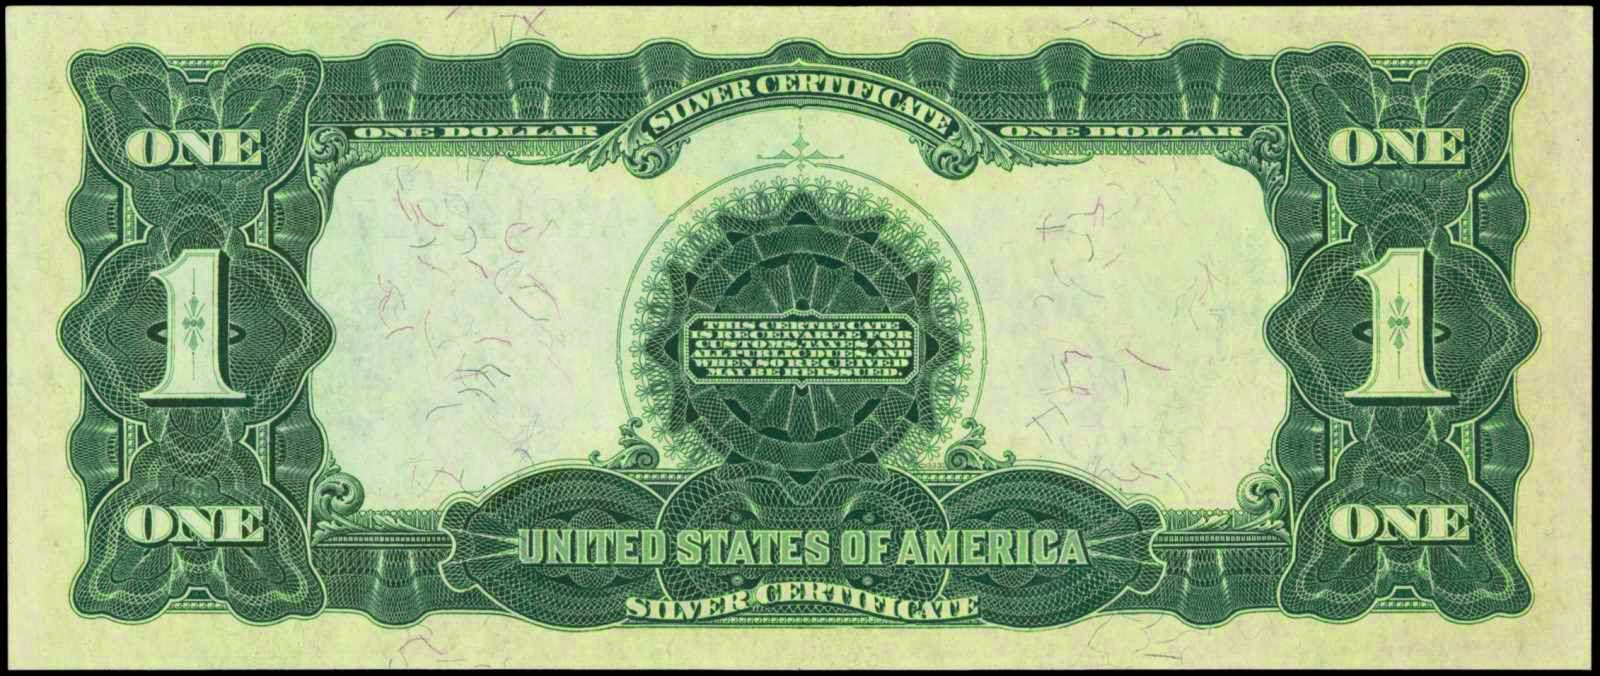 1899 One Dollar Silver Certificate Black Eagleworld Banknotes